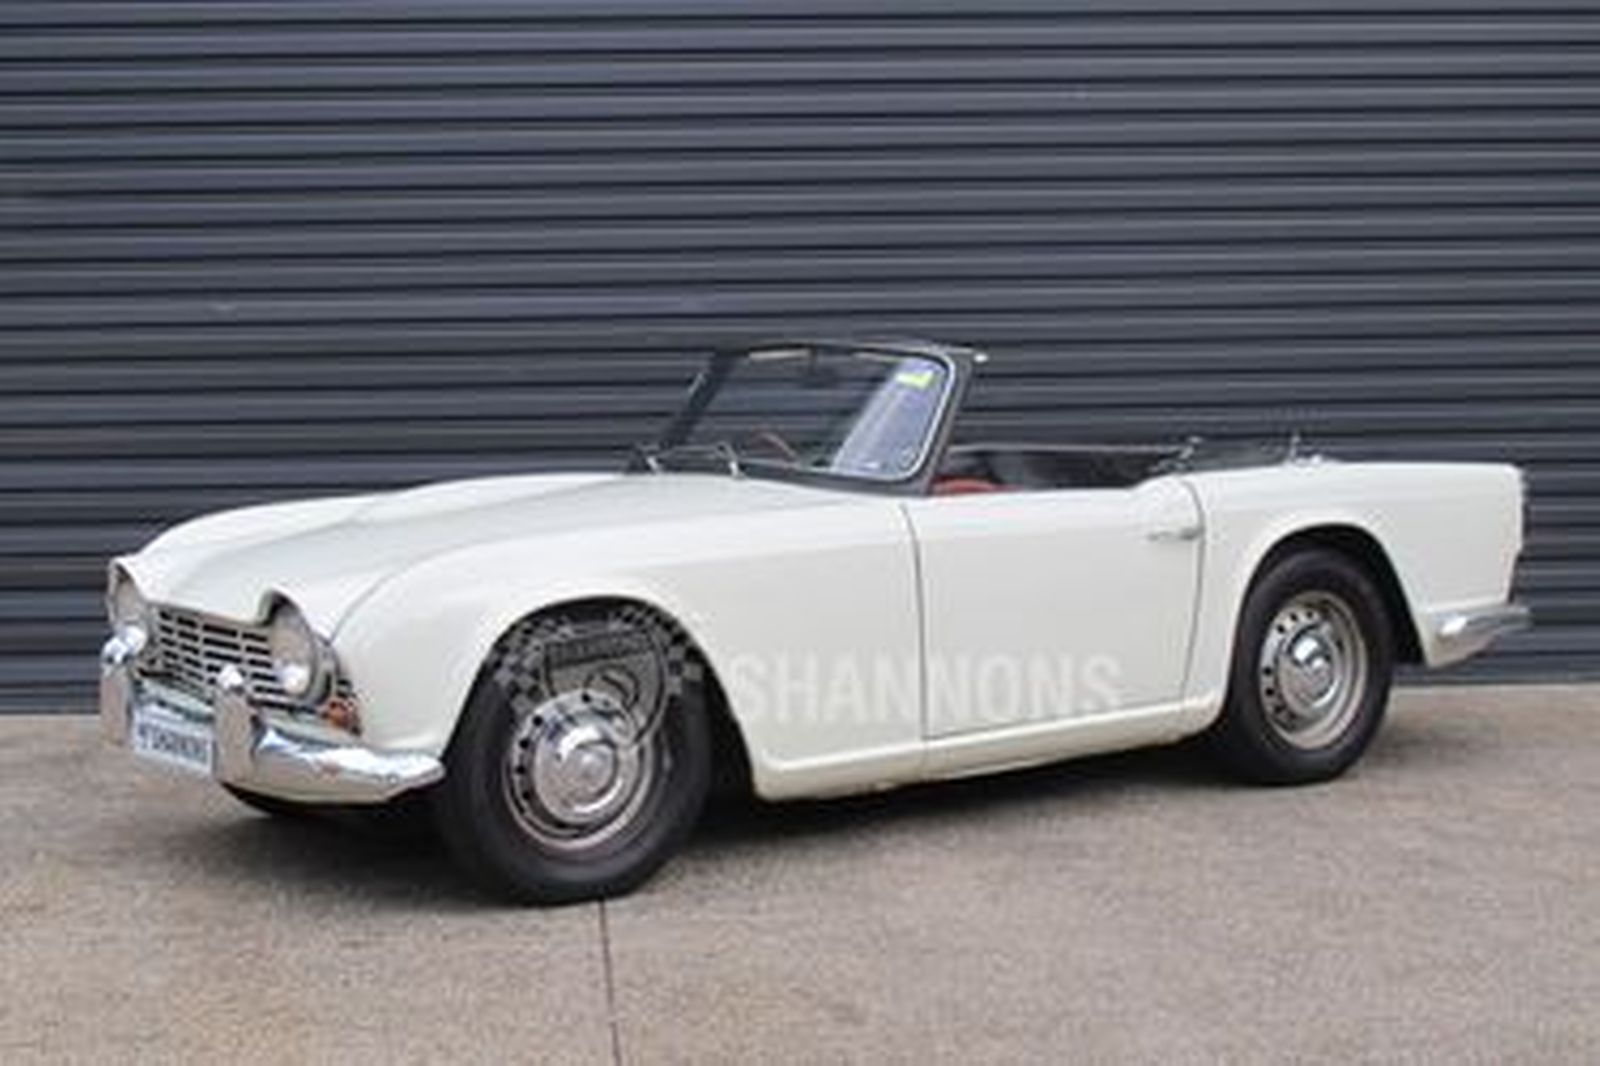 Sold: Triumph TR4 Roadster Auctions - Lot 58 - Shannons